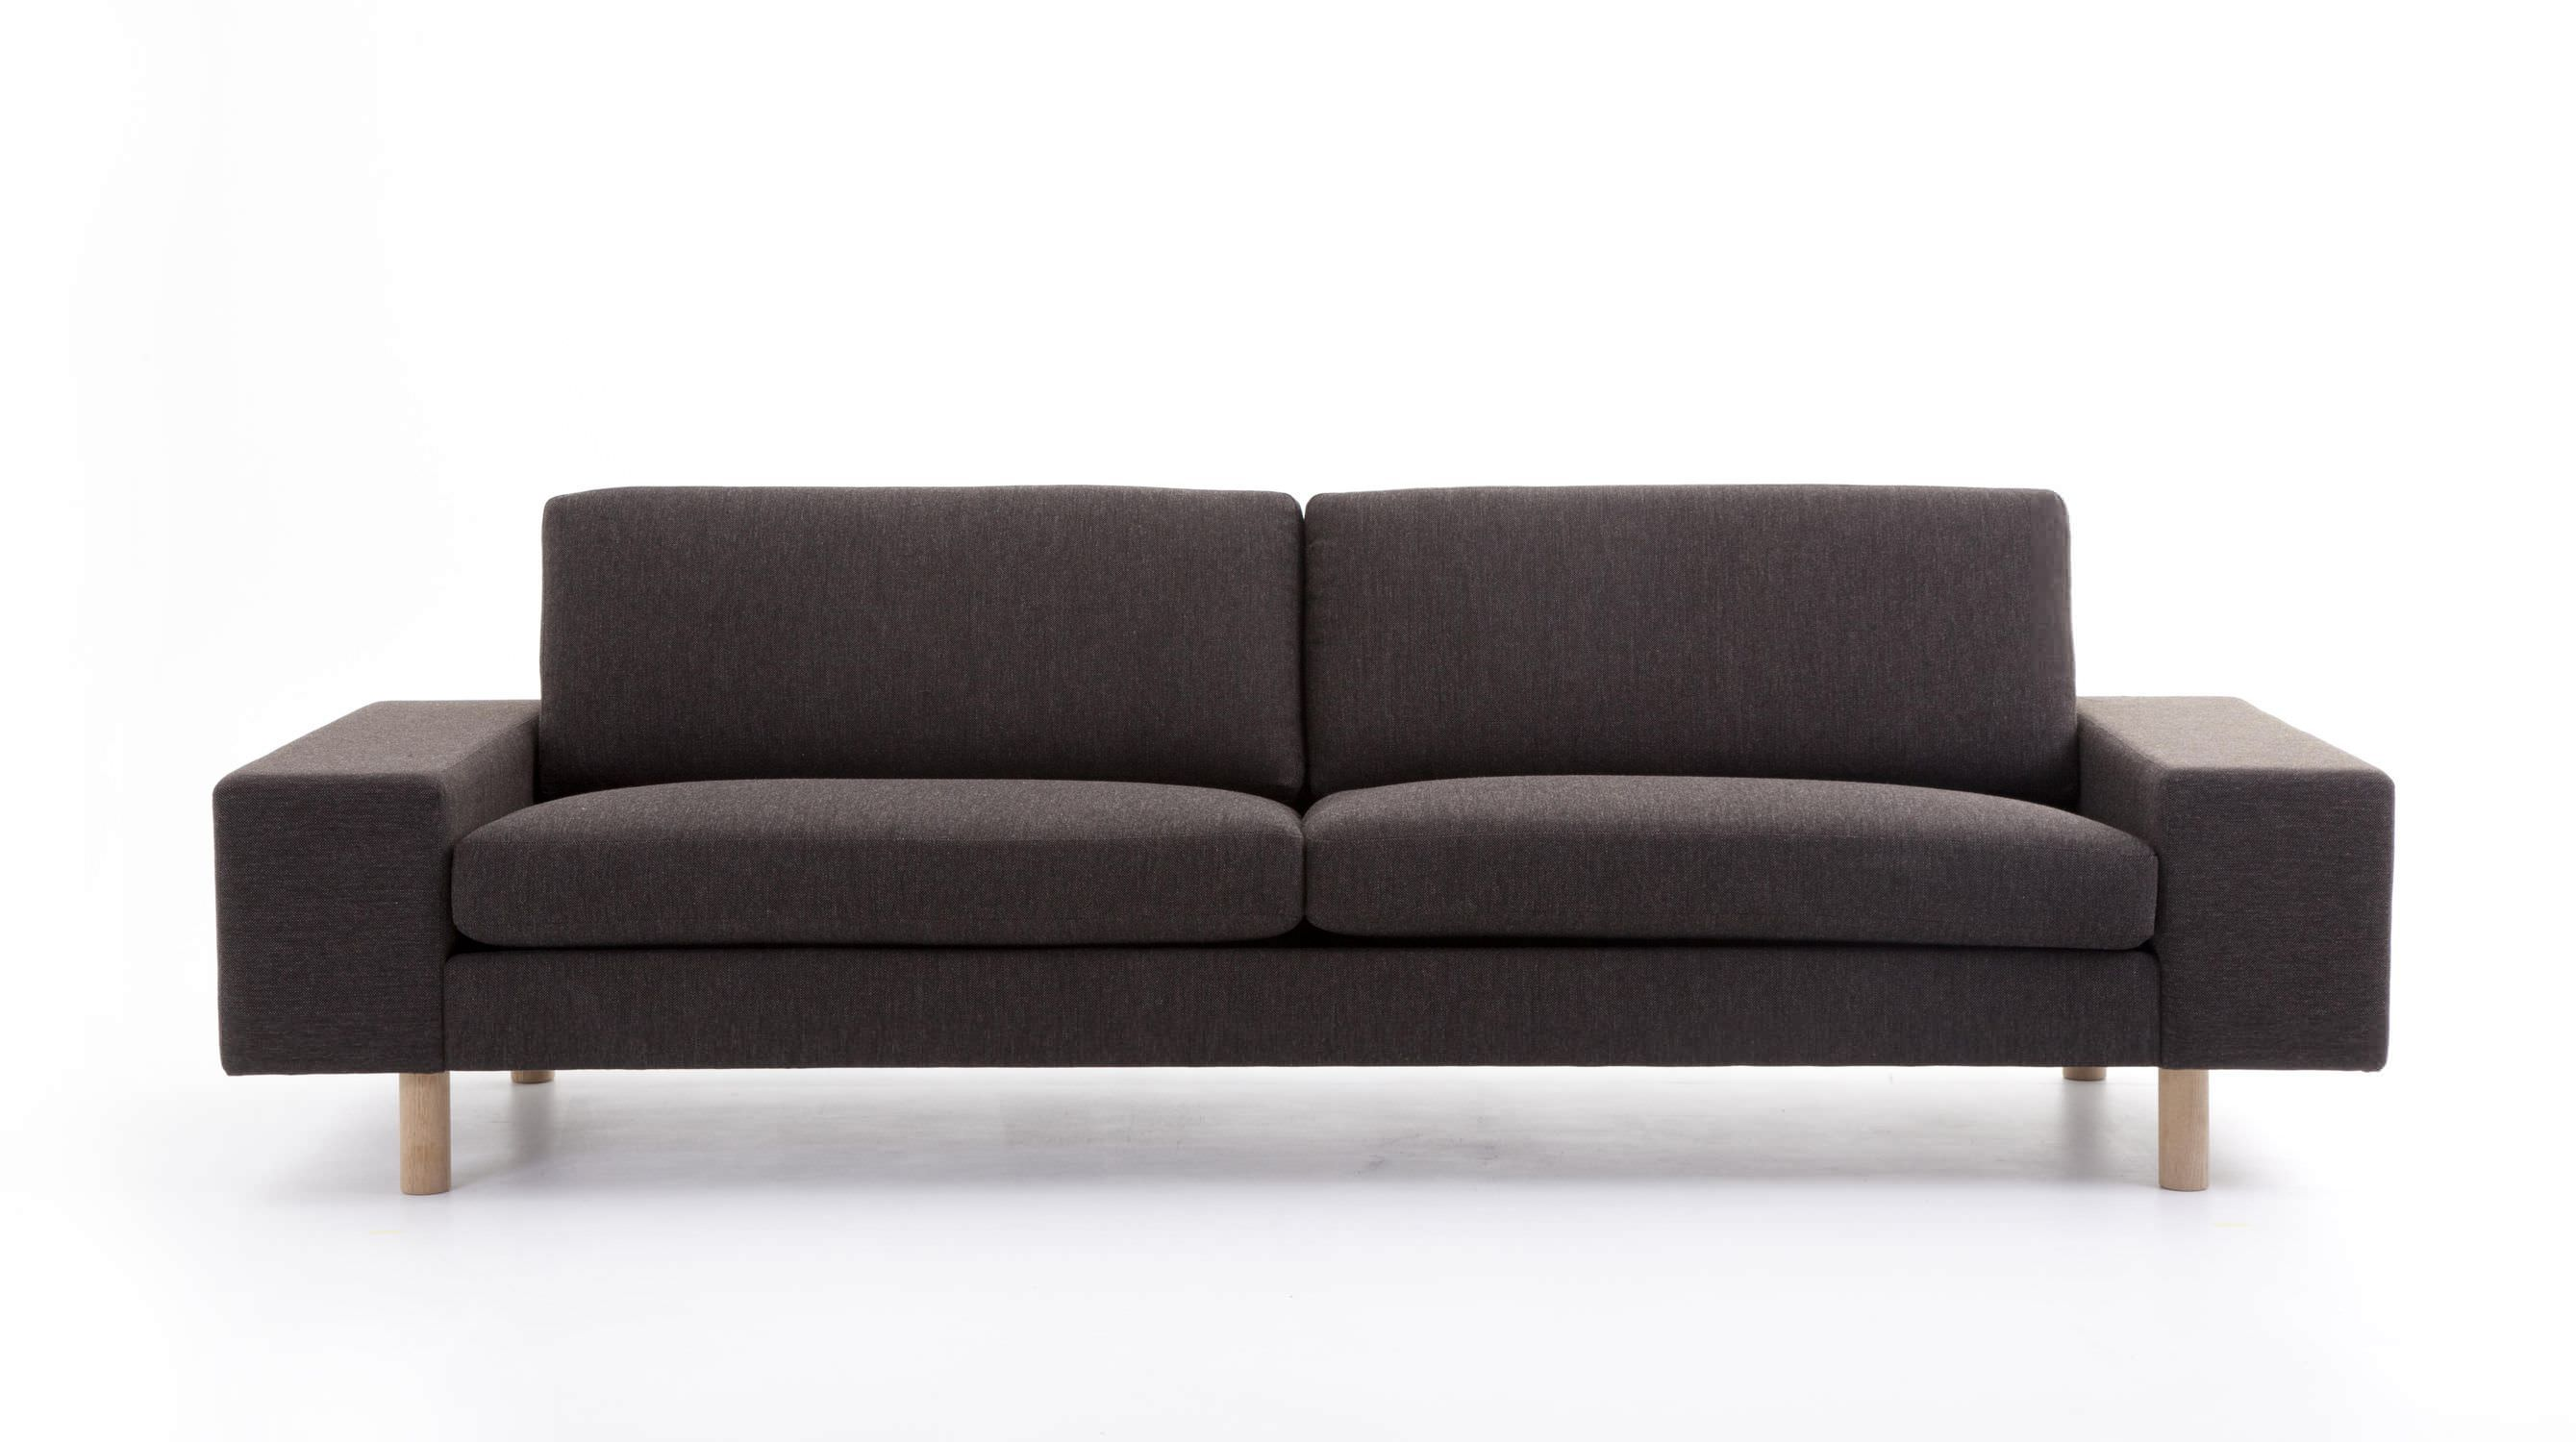 Contemporary sofa fabric 2 seater with removable cover